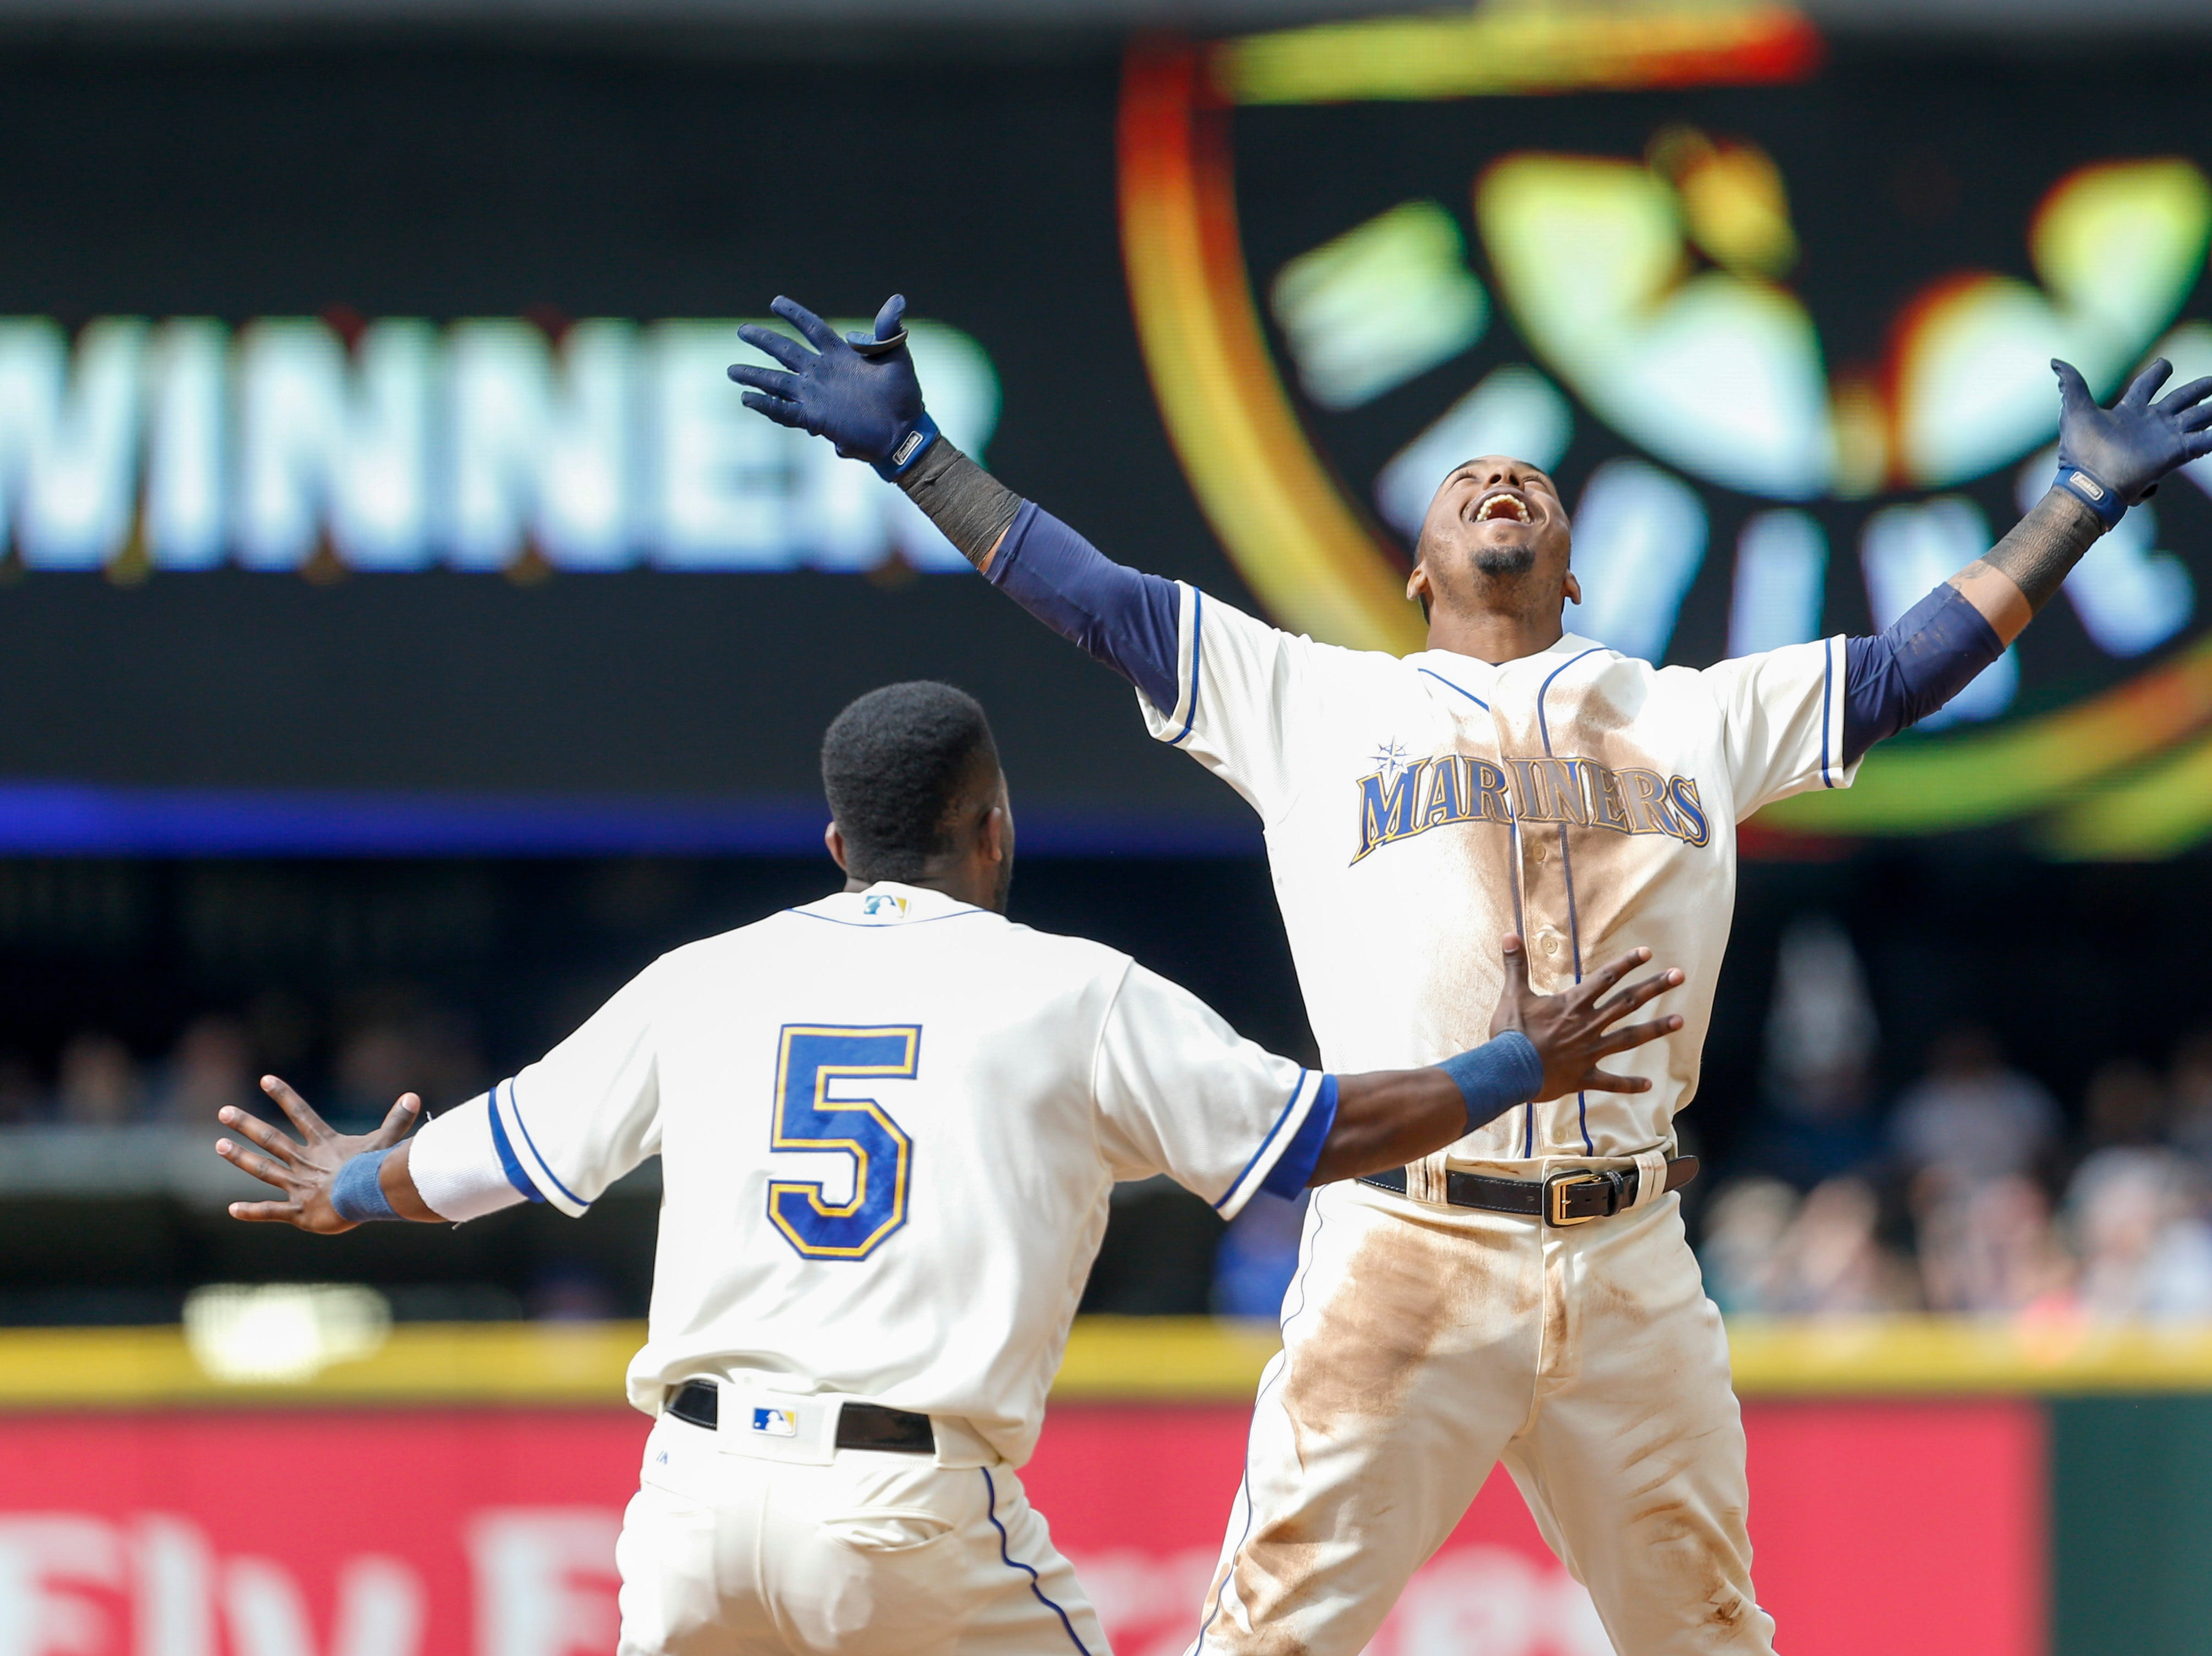 May 20: Seattle Mariners shortstop Jean Segura (2) celebrates after hitting a walk-off single against the Detroit Tigers during the 11th inning at Safeco Field.